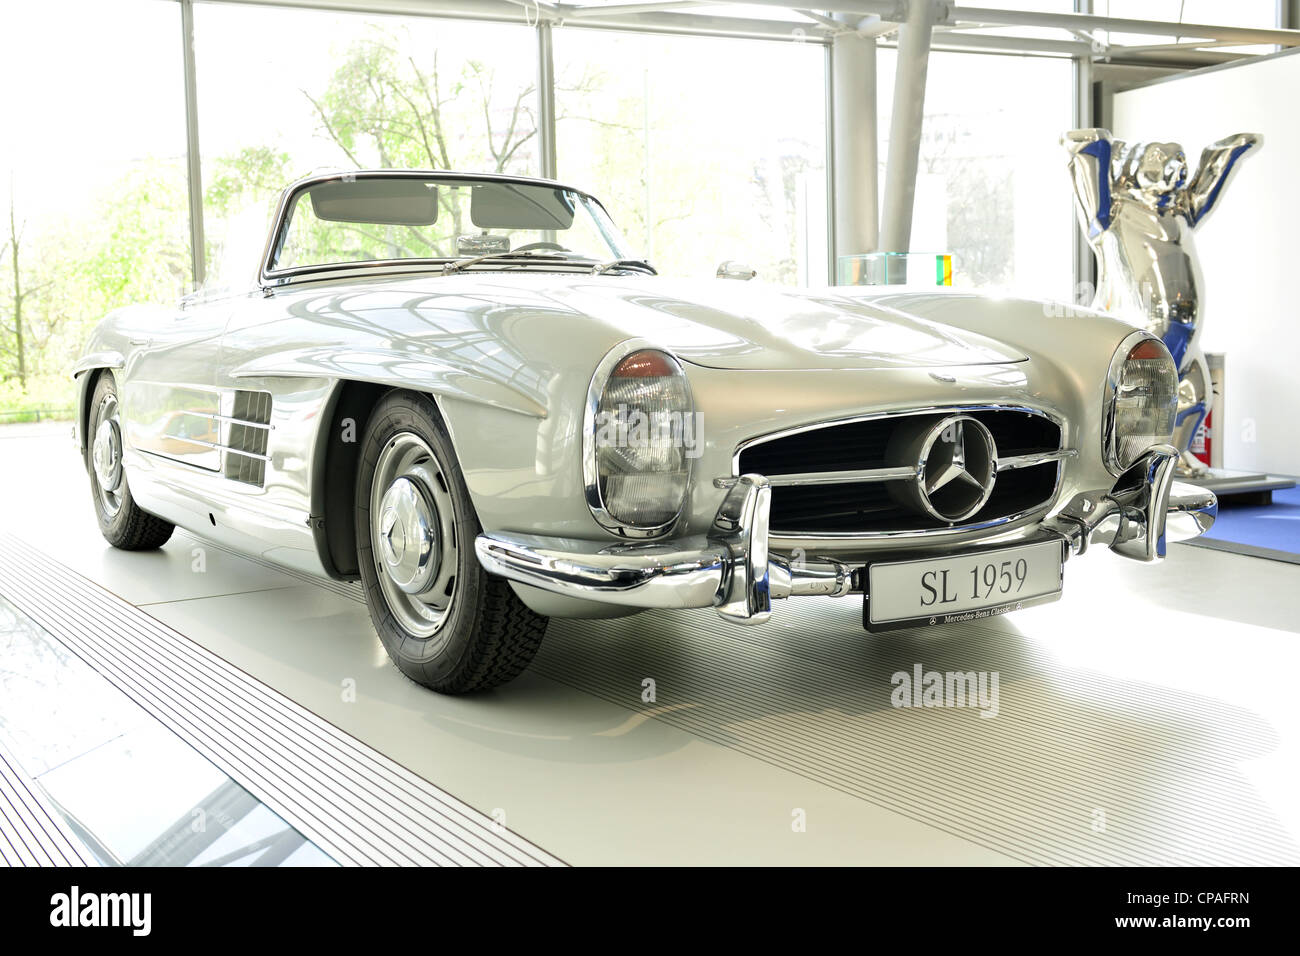 cabrio classic mercedes benz oldtimer slk stockfoto. Black Bedroom Furniture Sets. Home Design Ideas